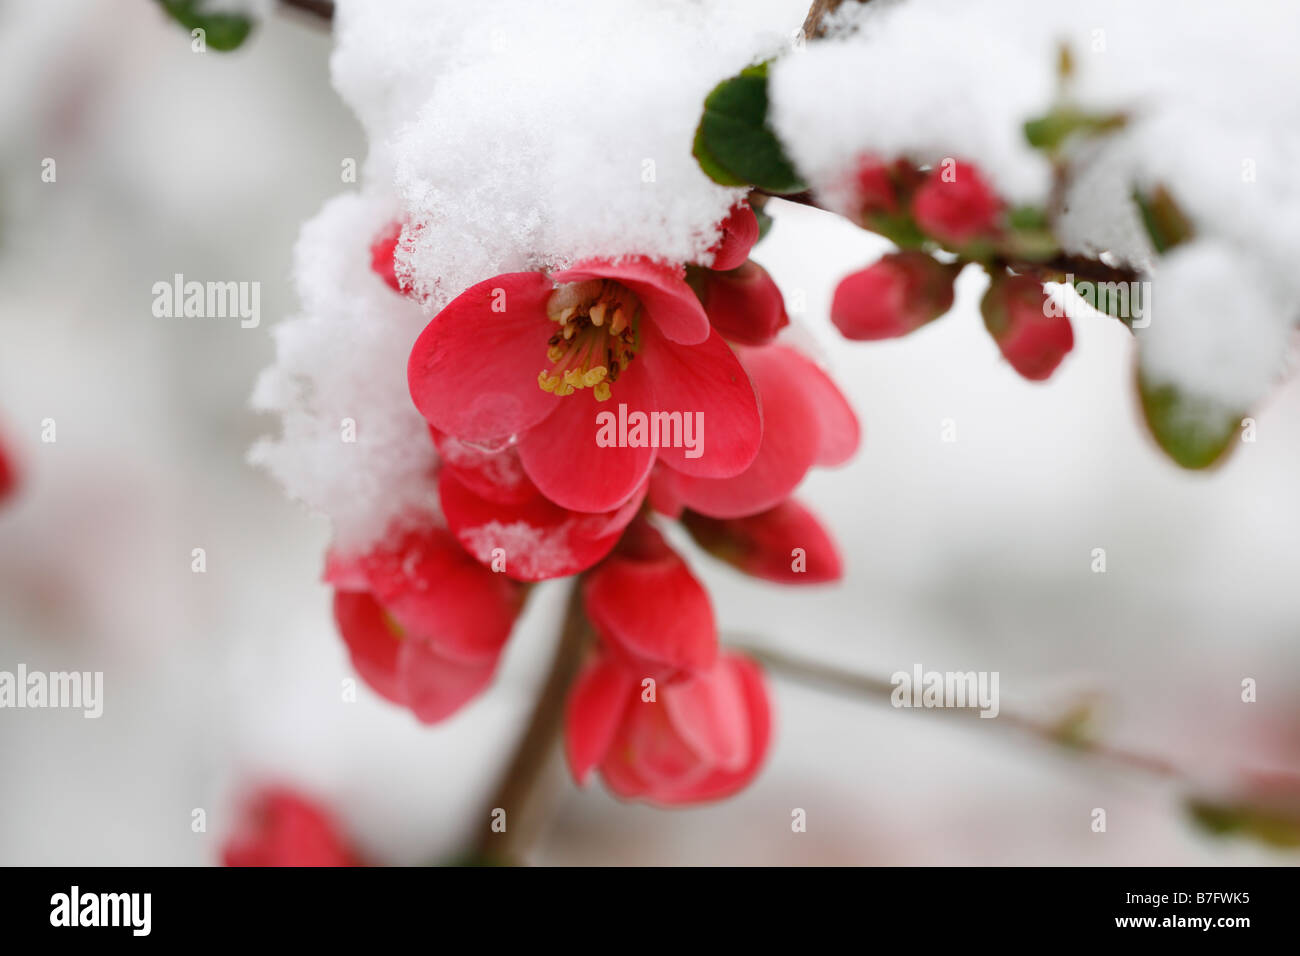 snow on the red blossom of japanese quince flowers lat chaenomeles japonica - Quince Flower